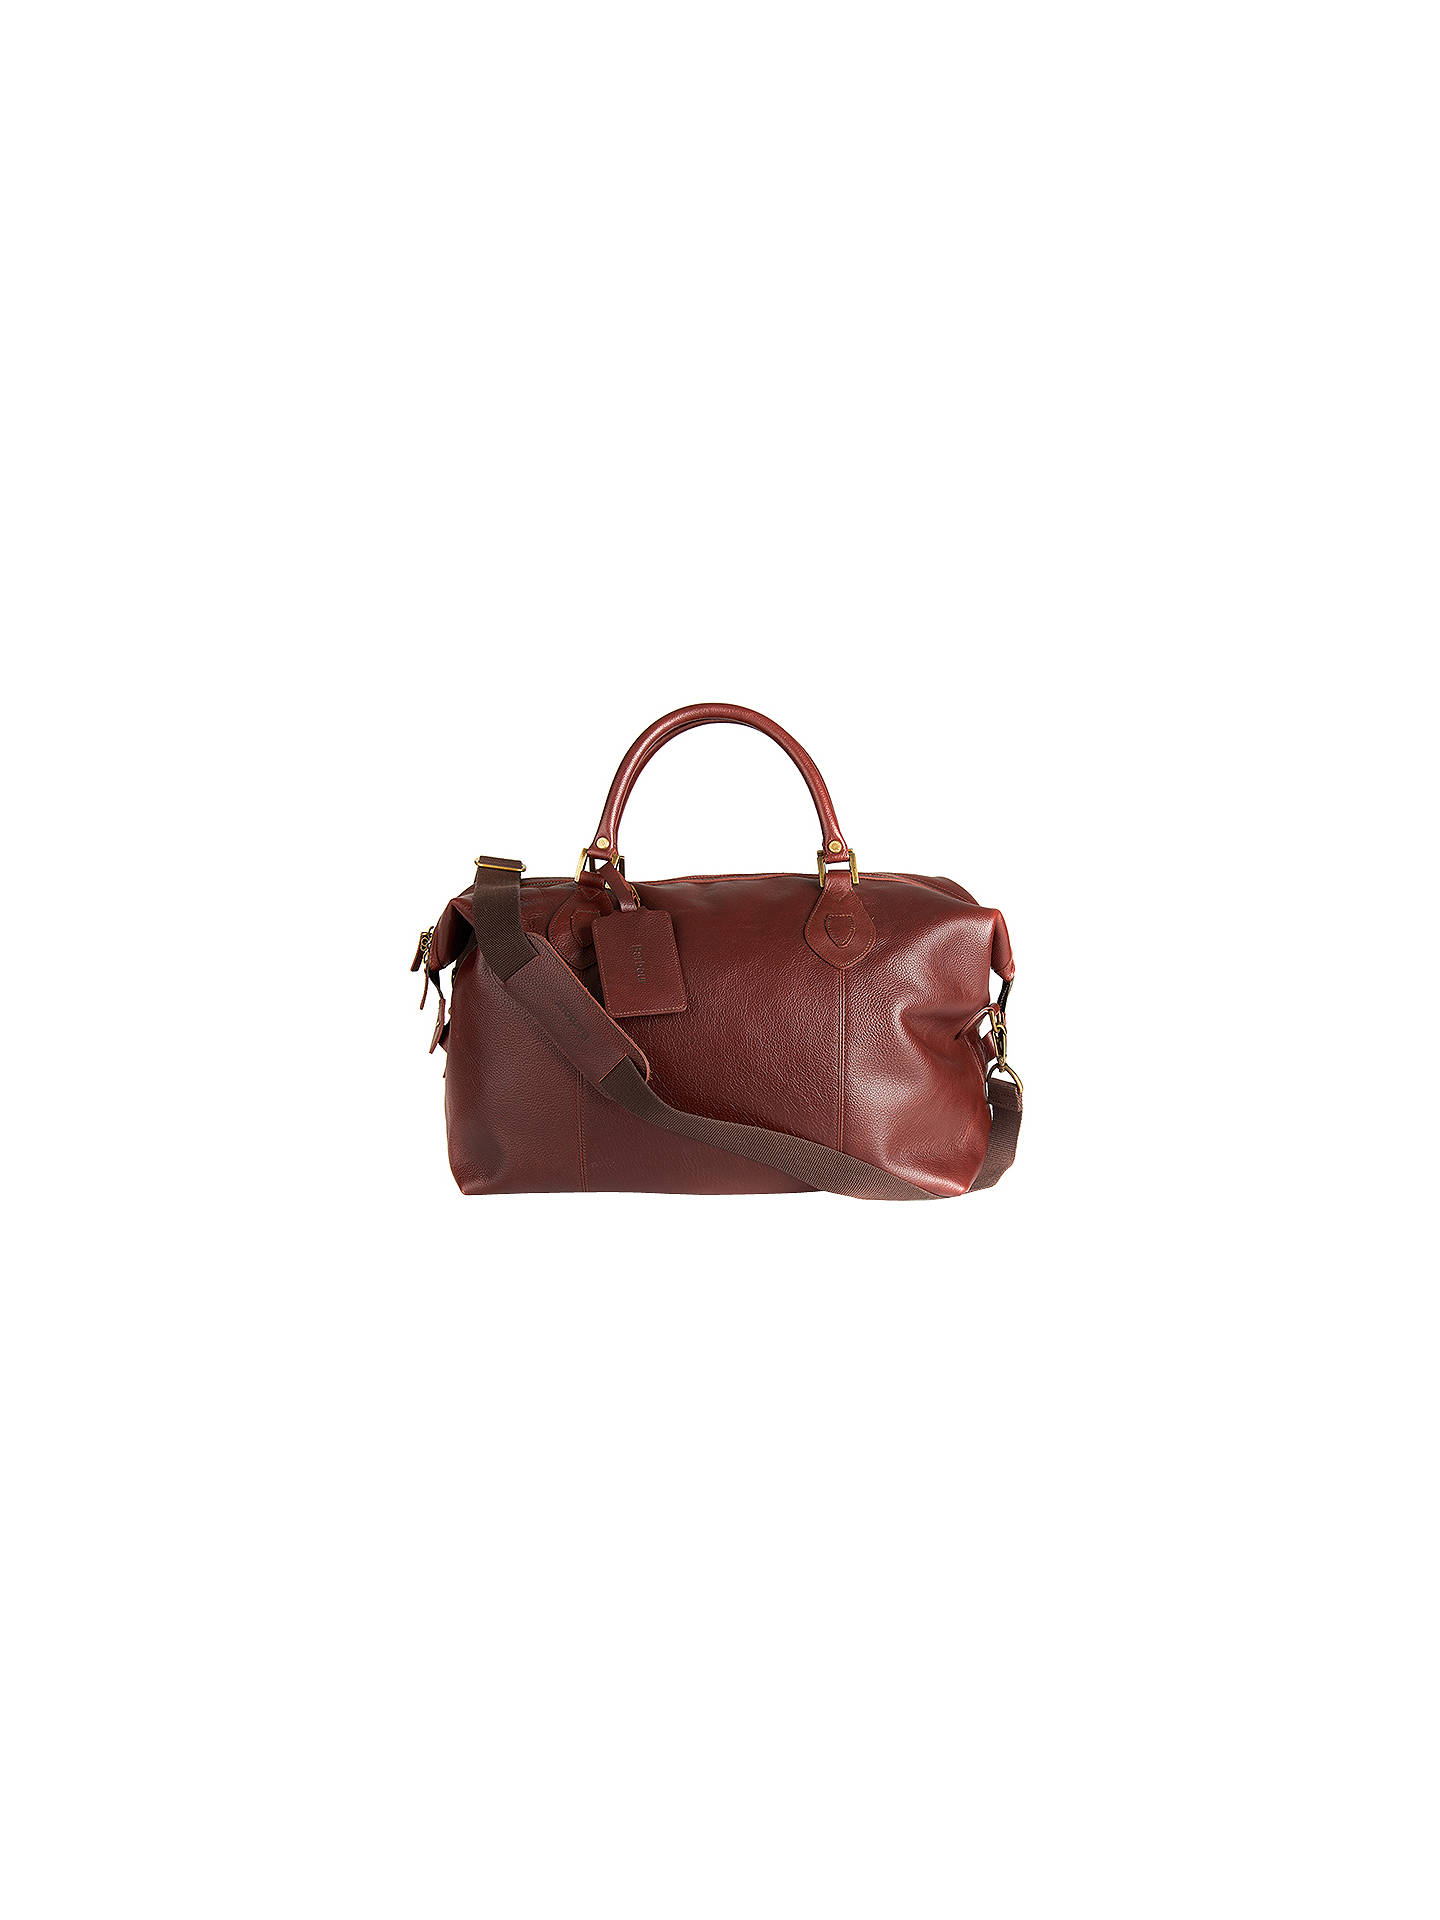 BuyBarbour Leather Explorer Bag, Brown Online at johnlewis.com